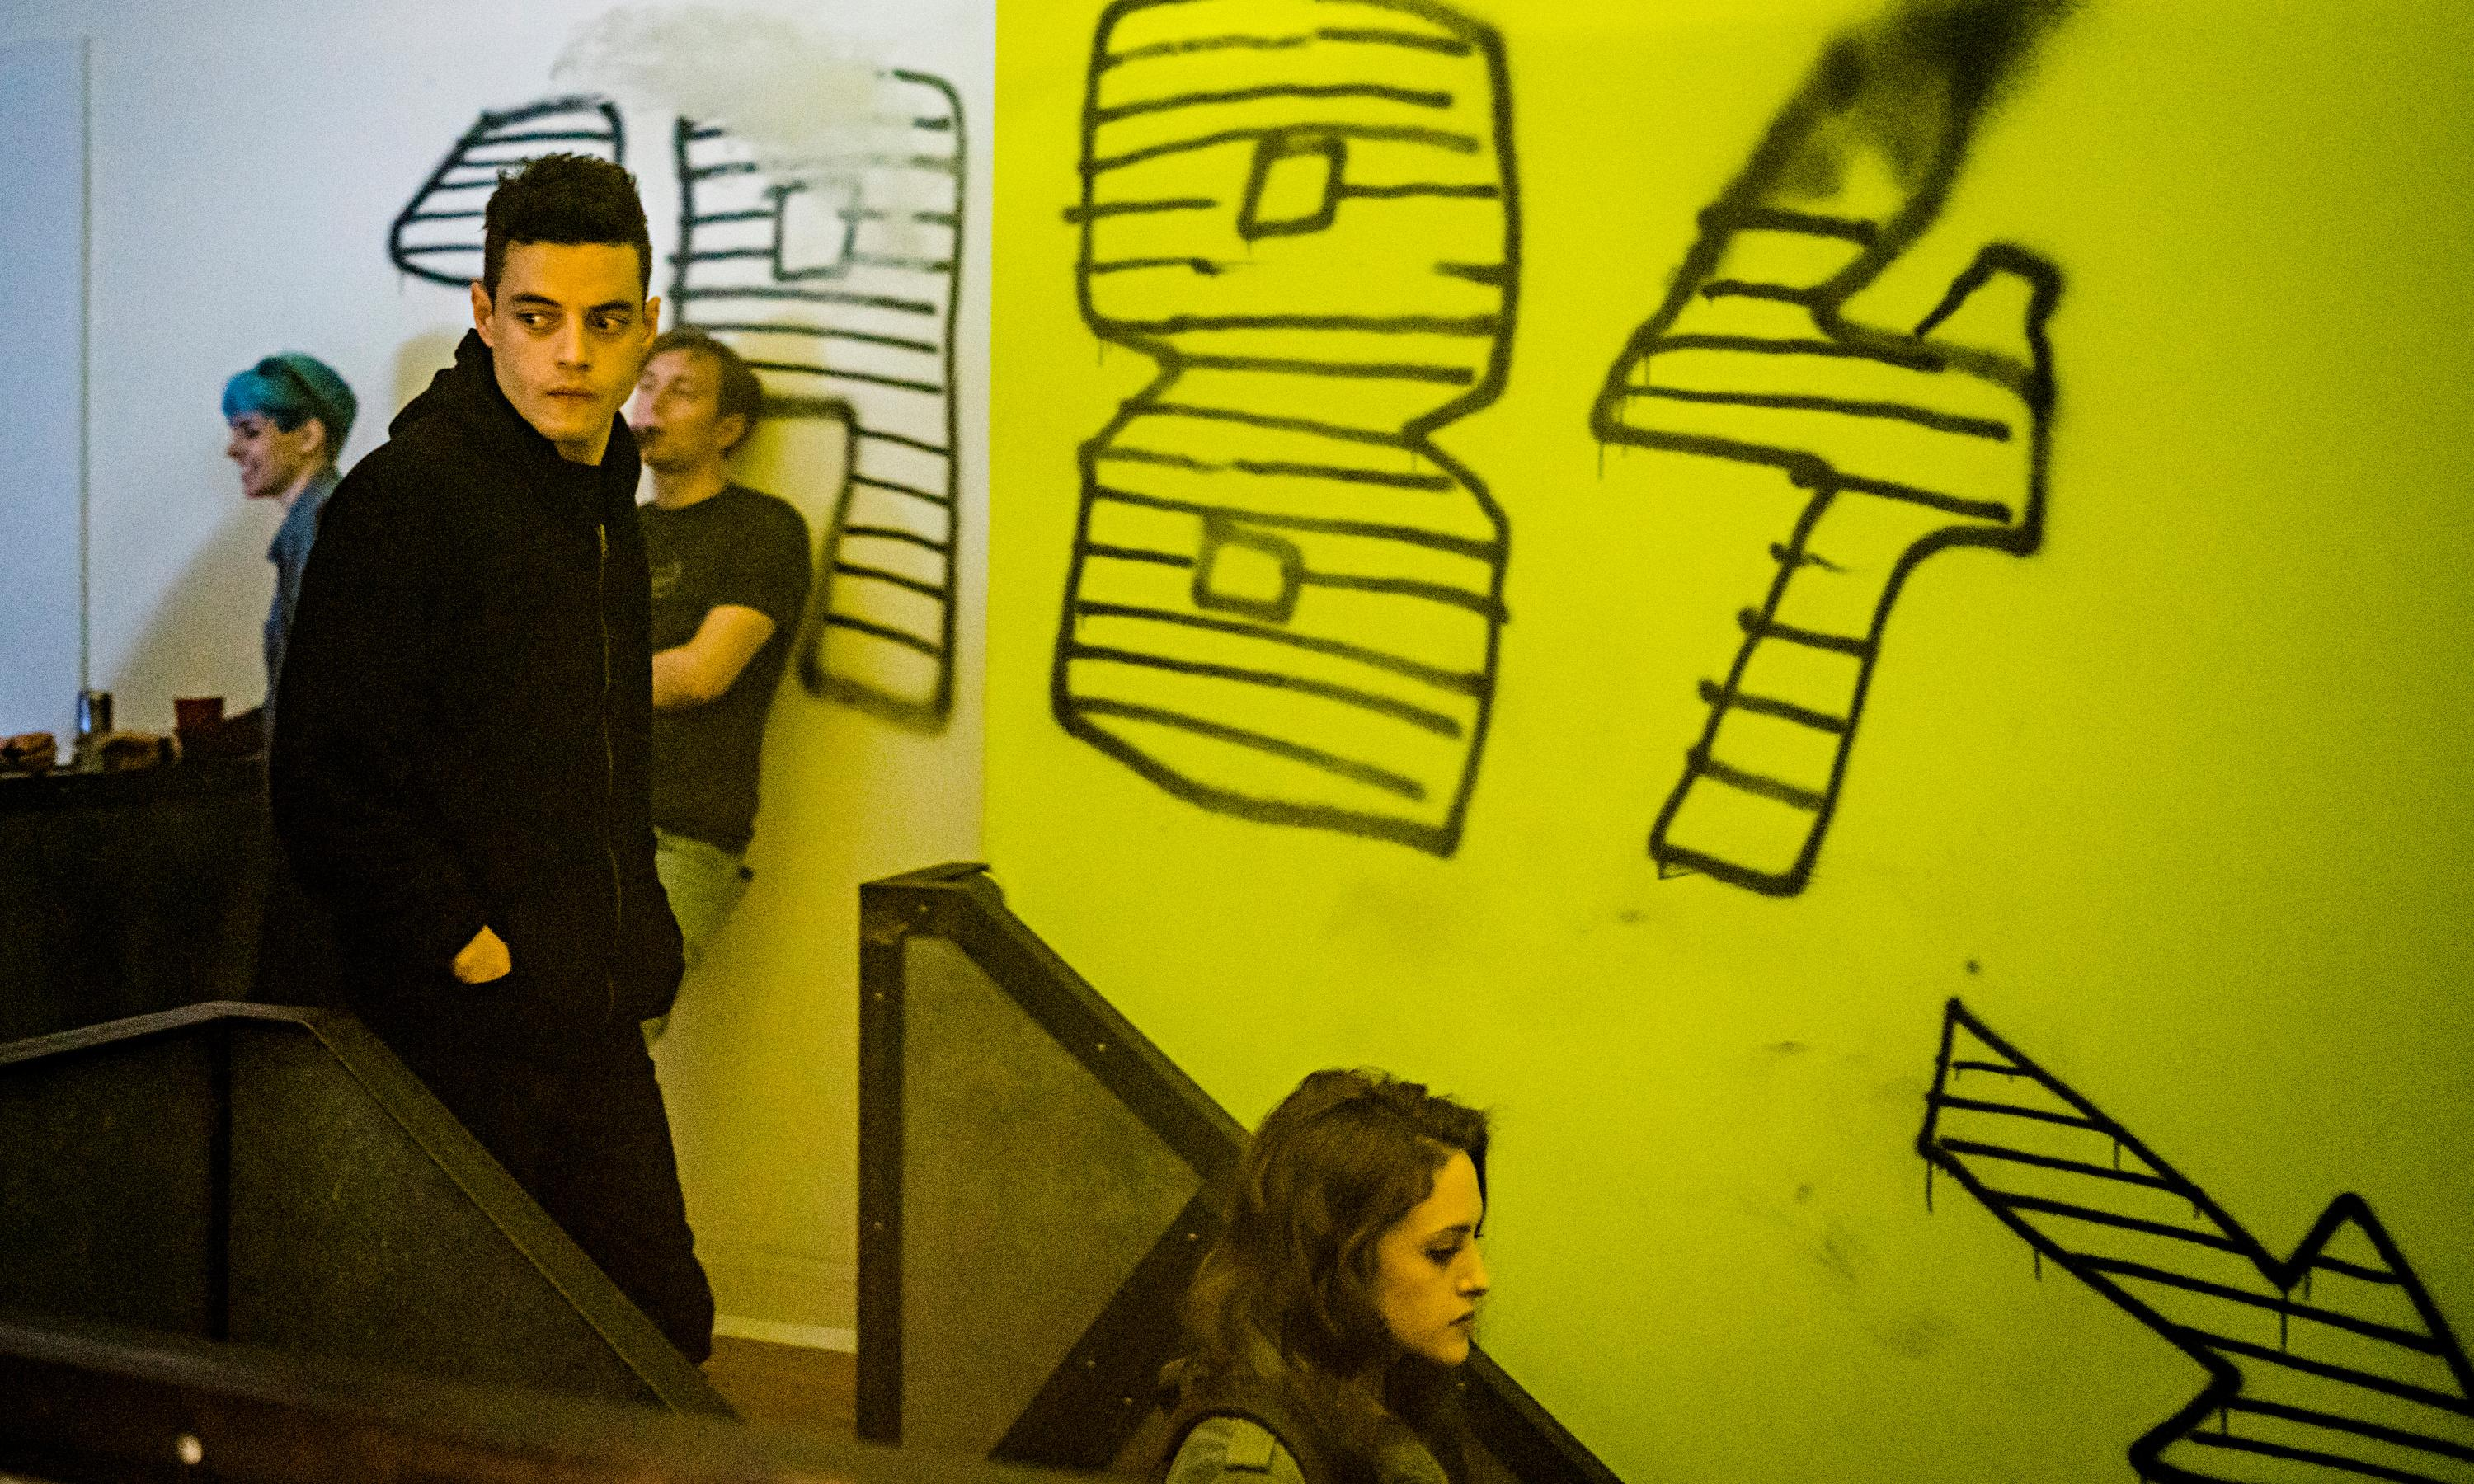 Mr Robot: from show of the zeitgeist to TV's biggest disappointment